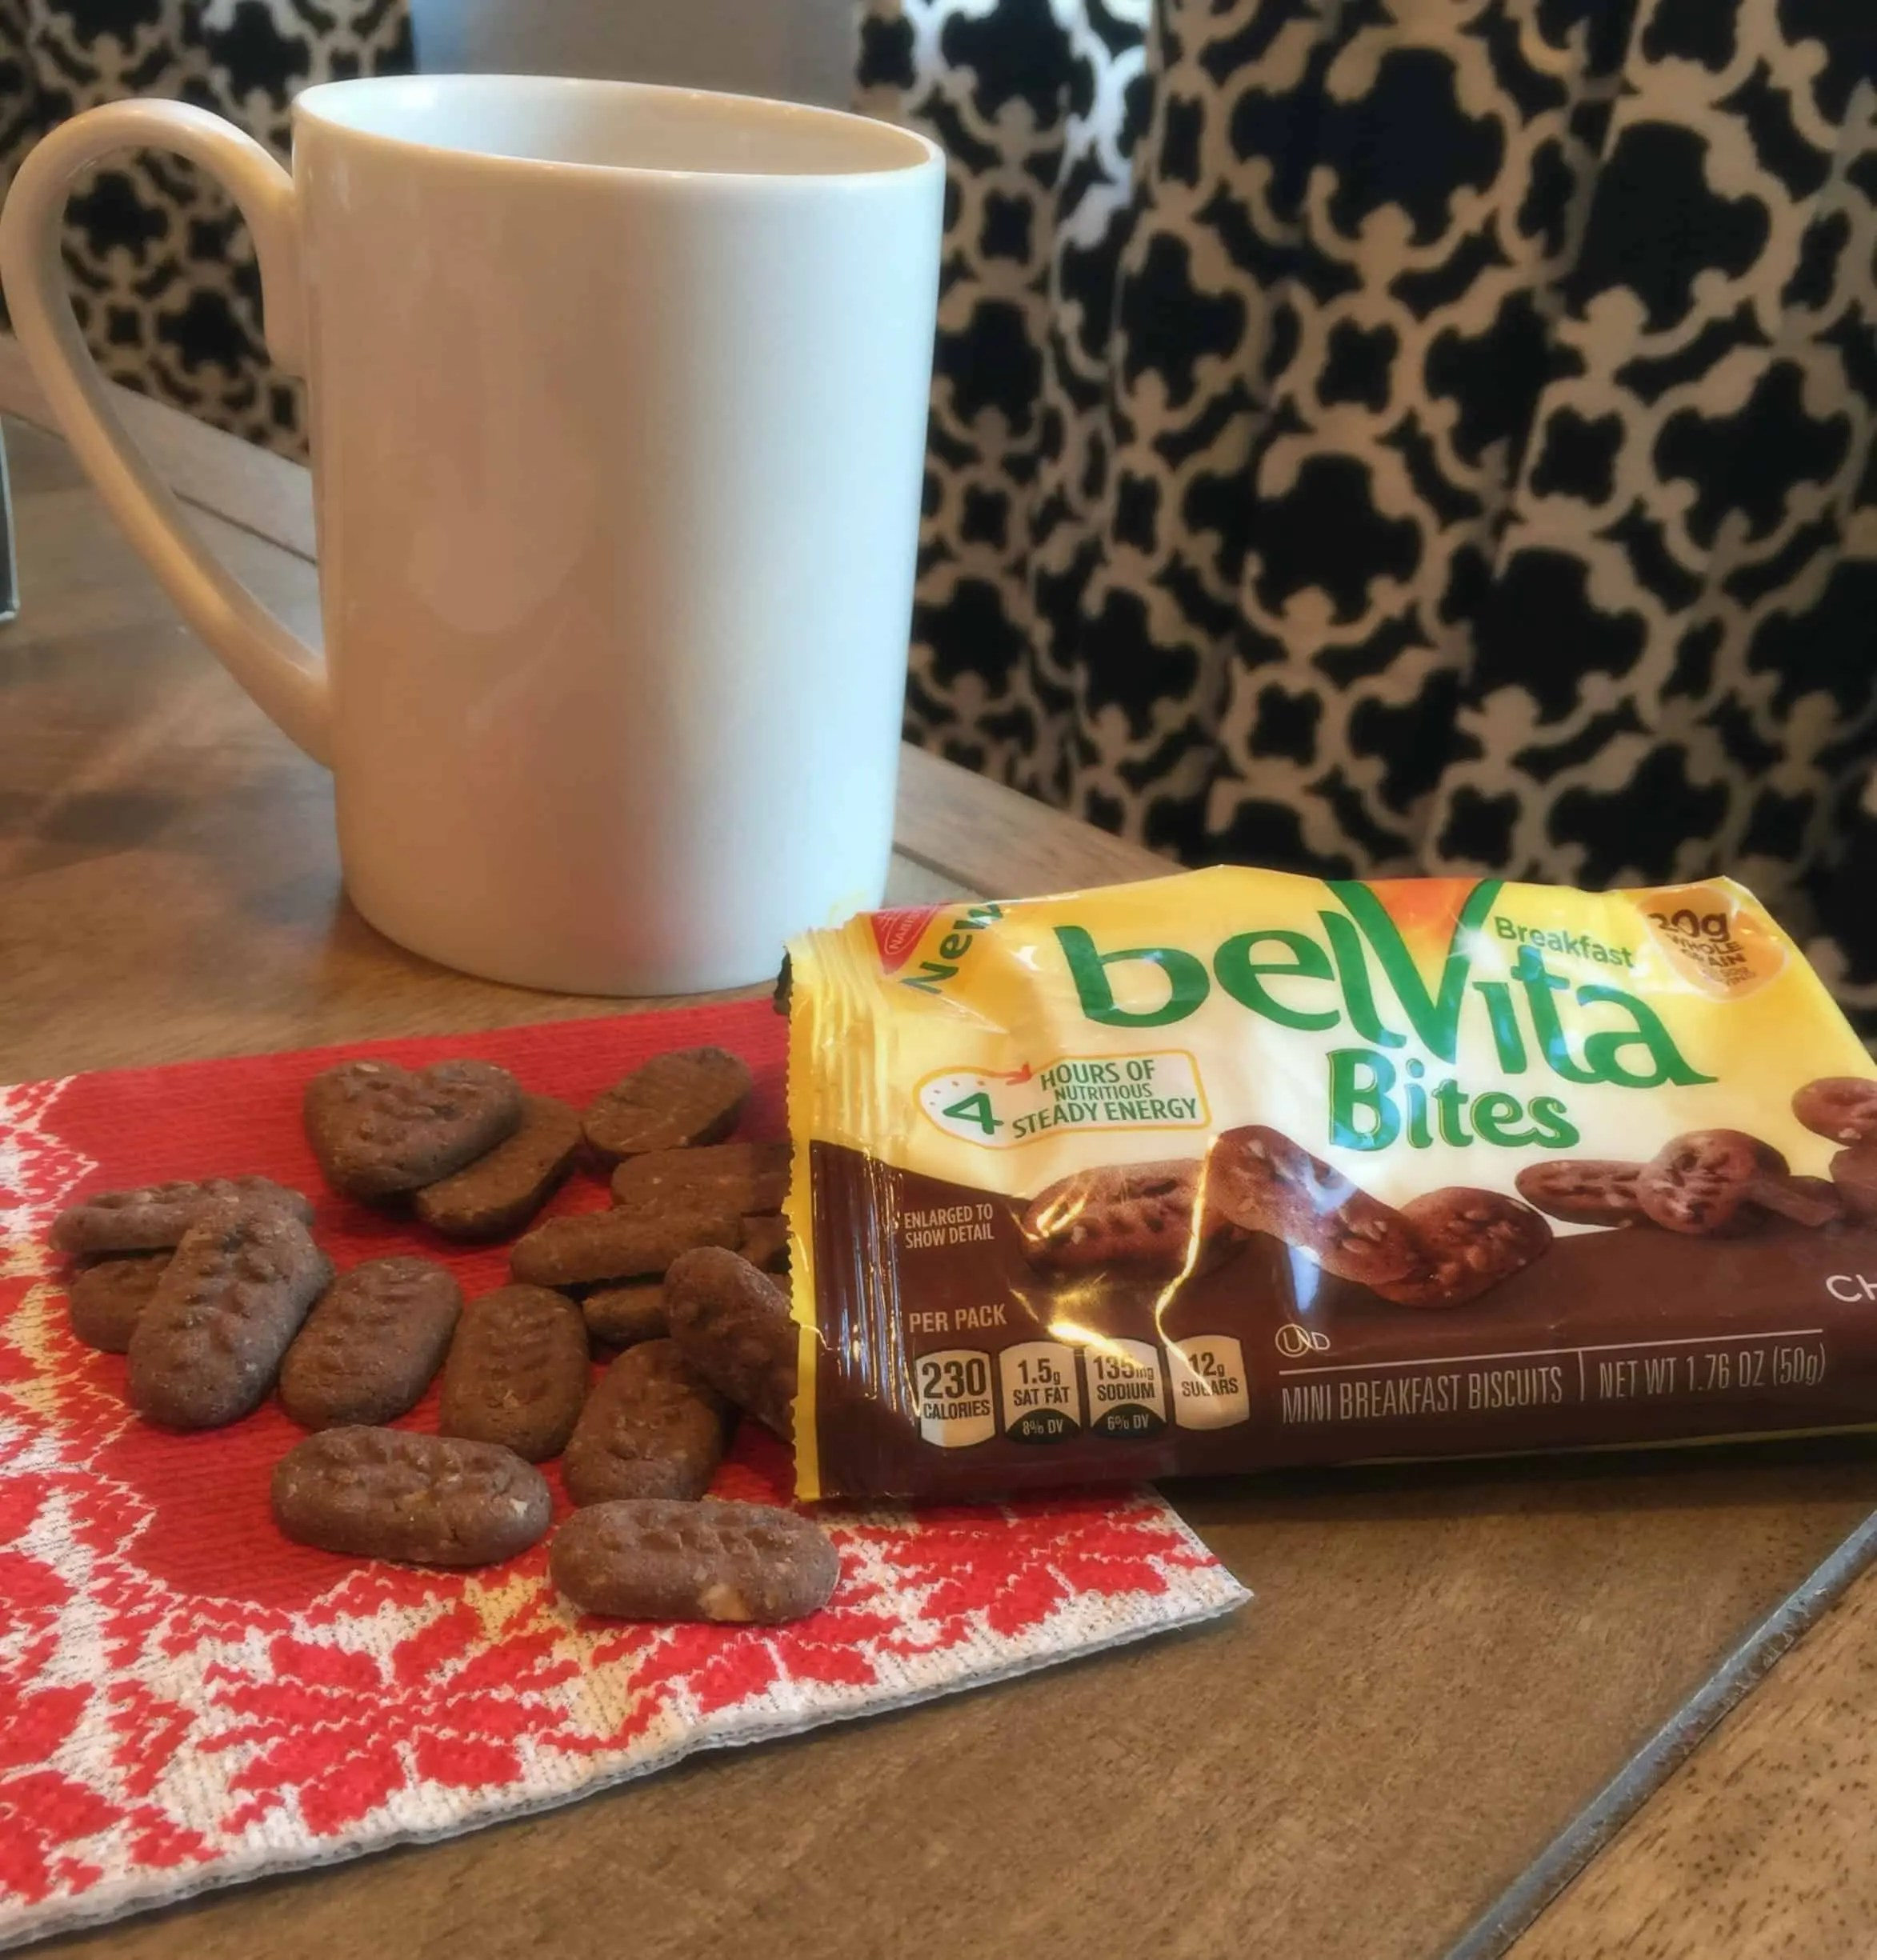 belVita Bites and coffee